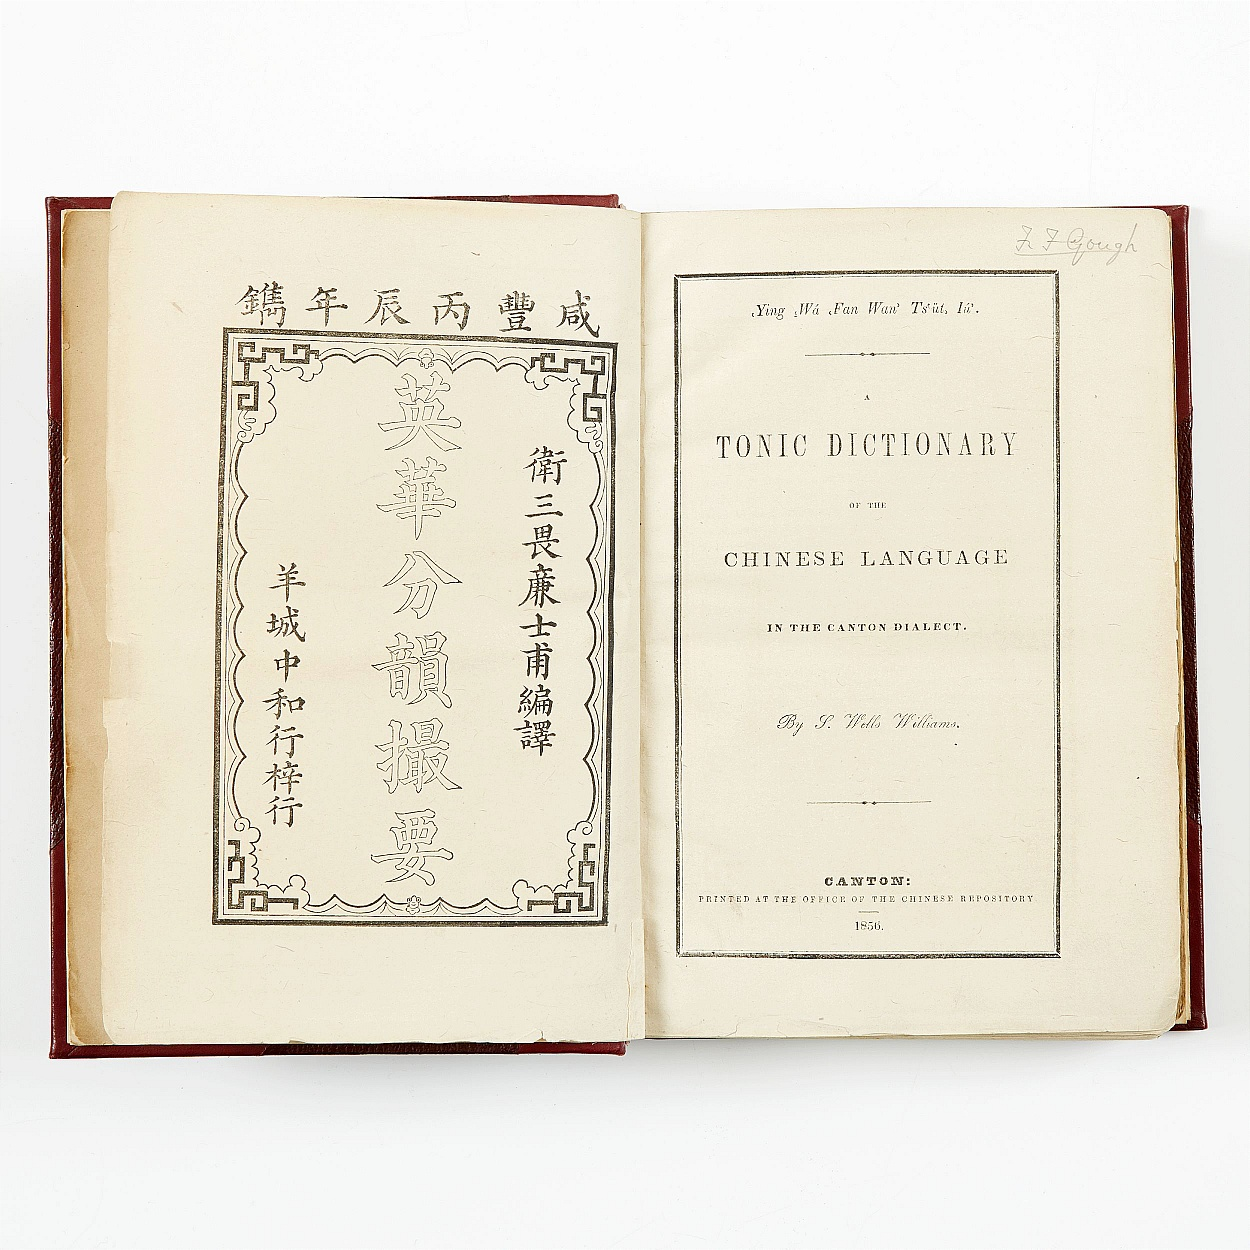 A Tonic Dictionary of the Chinese Language